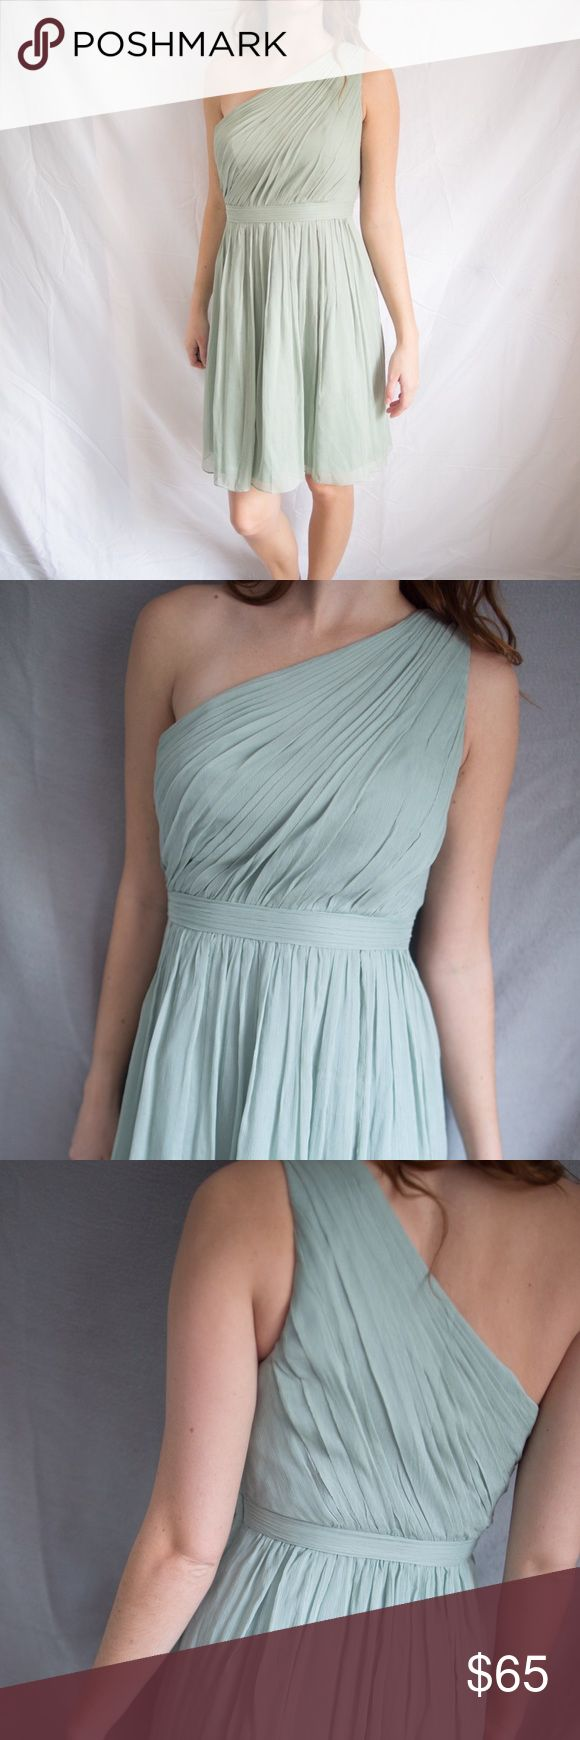 J Crew Bridesmaids Dress One shoulder J Crew Bridesmaids dress. Egg shell color ( light greenish/greyish) Only worn once! Great Condition! Like New! J. Crew Dresses Wedding